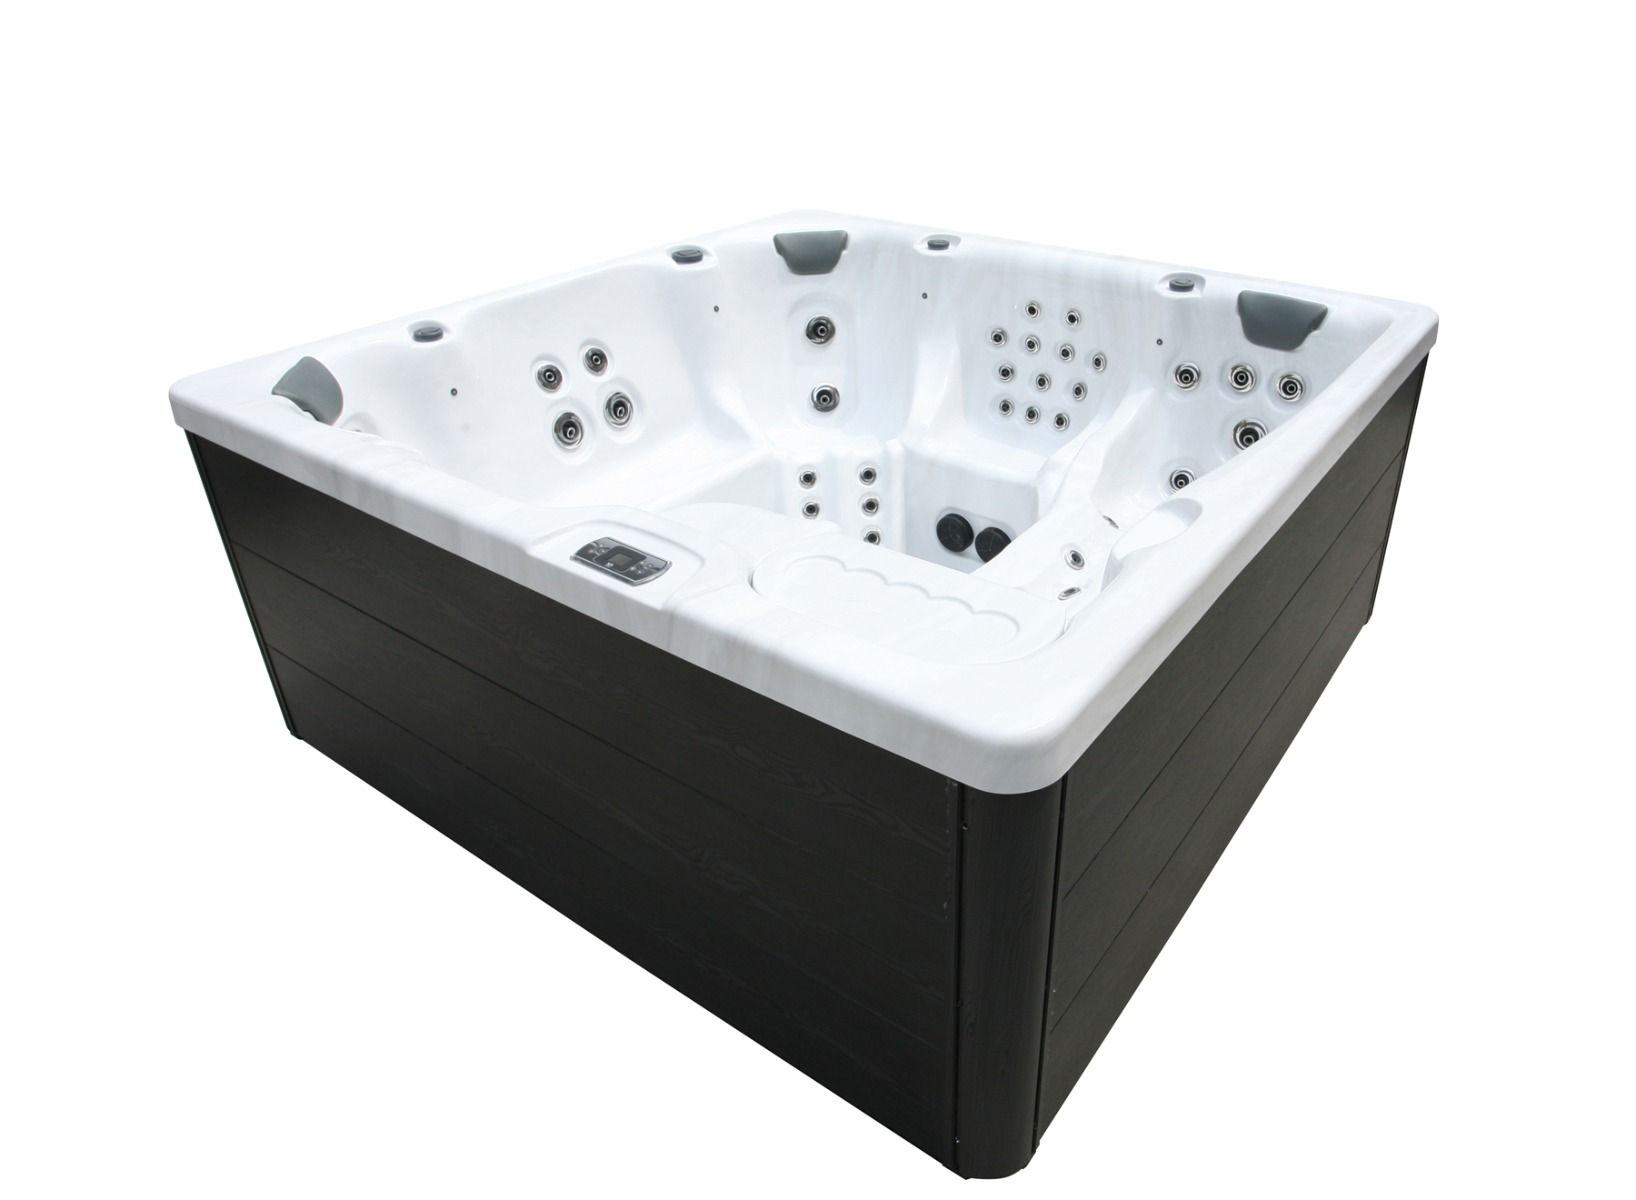 H2O 5500 BWA Series Twin Pump Hot Tub - 2019 Model